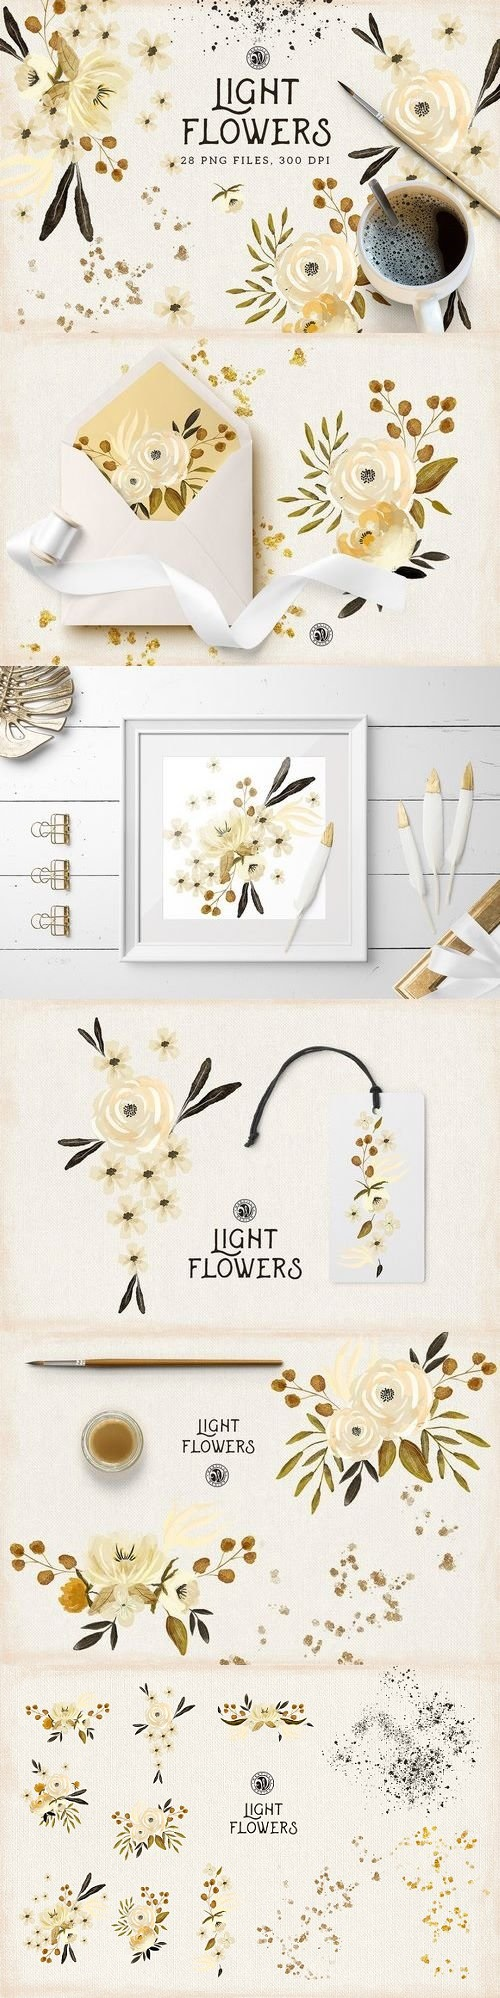 Light Flowers - 1366272